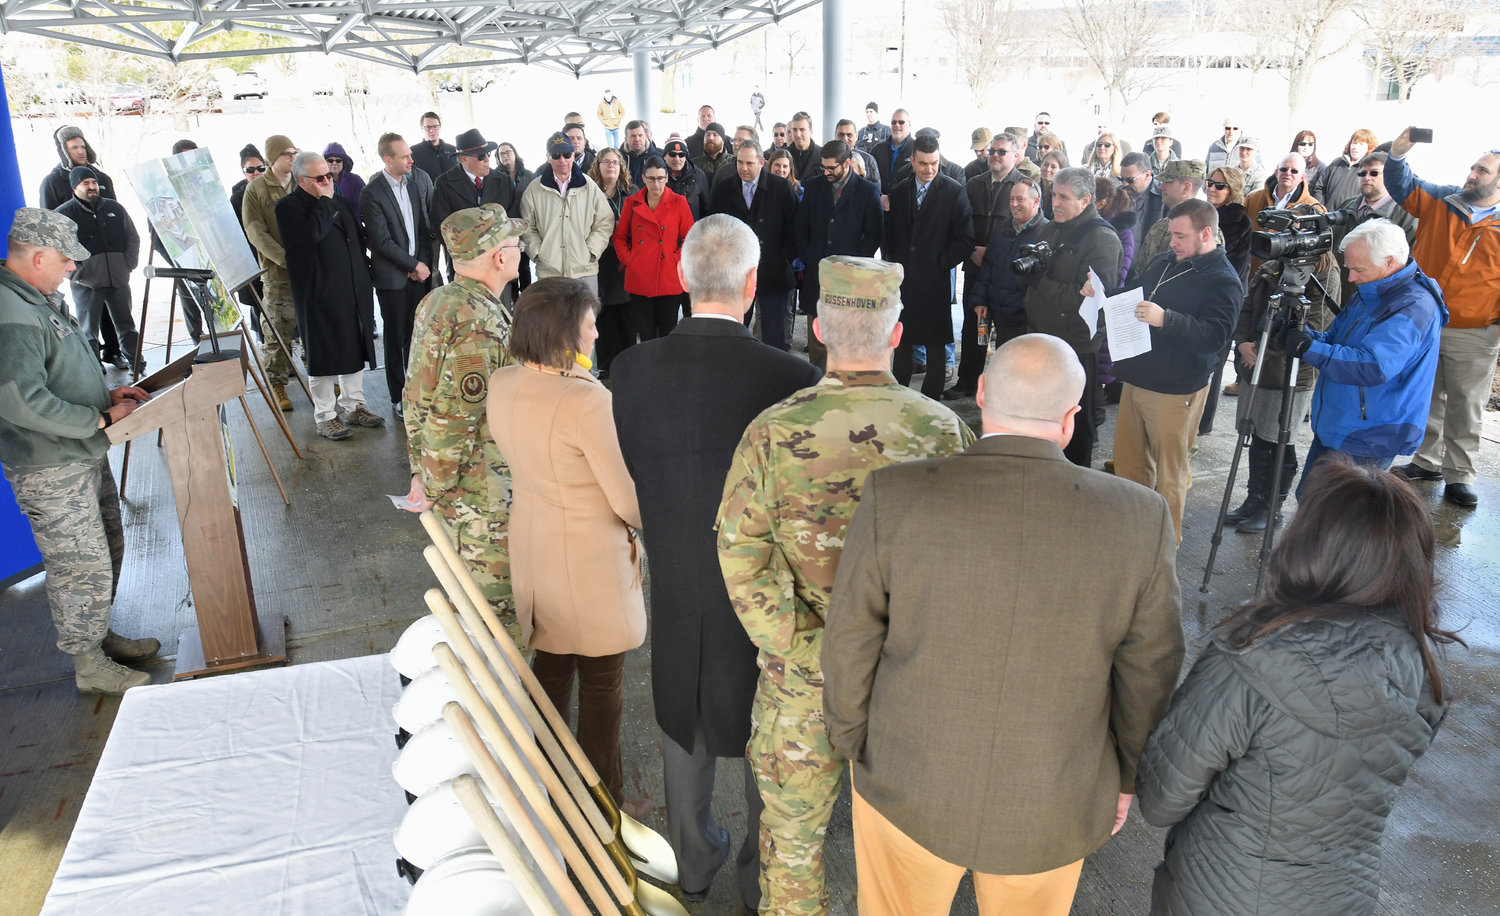 GATHERED FOR CEREMONY — At left, Air Force Lt. Col. Thomas Kramer speaks to the assembled crowd at a groundbreaking ceremony Wednesday for a new perimeter security system at the Air Force's Rome Lab. Kramer is deputy military commander for Detachment 4 at the lab.